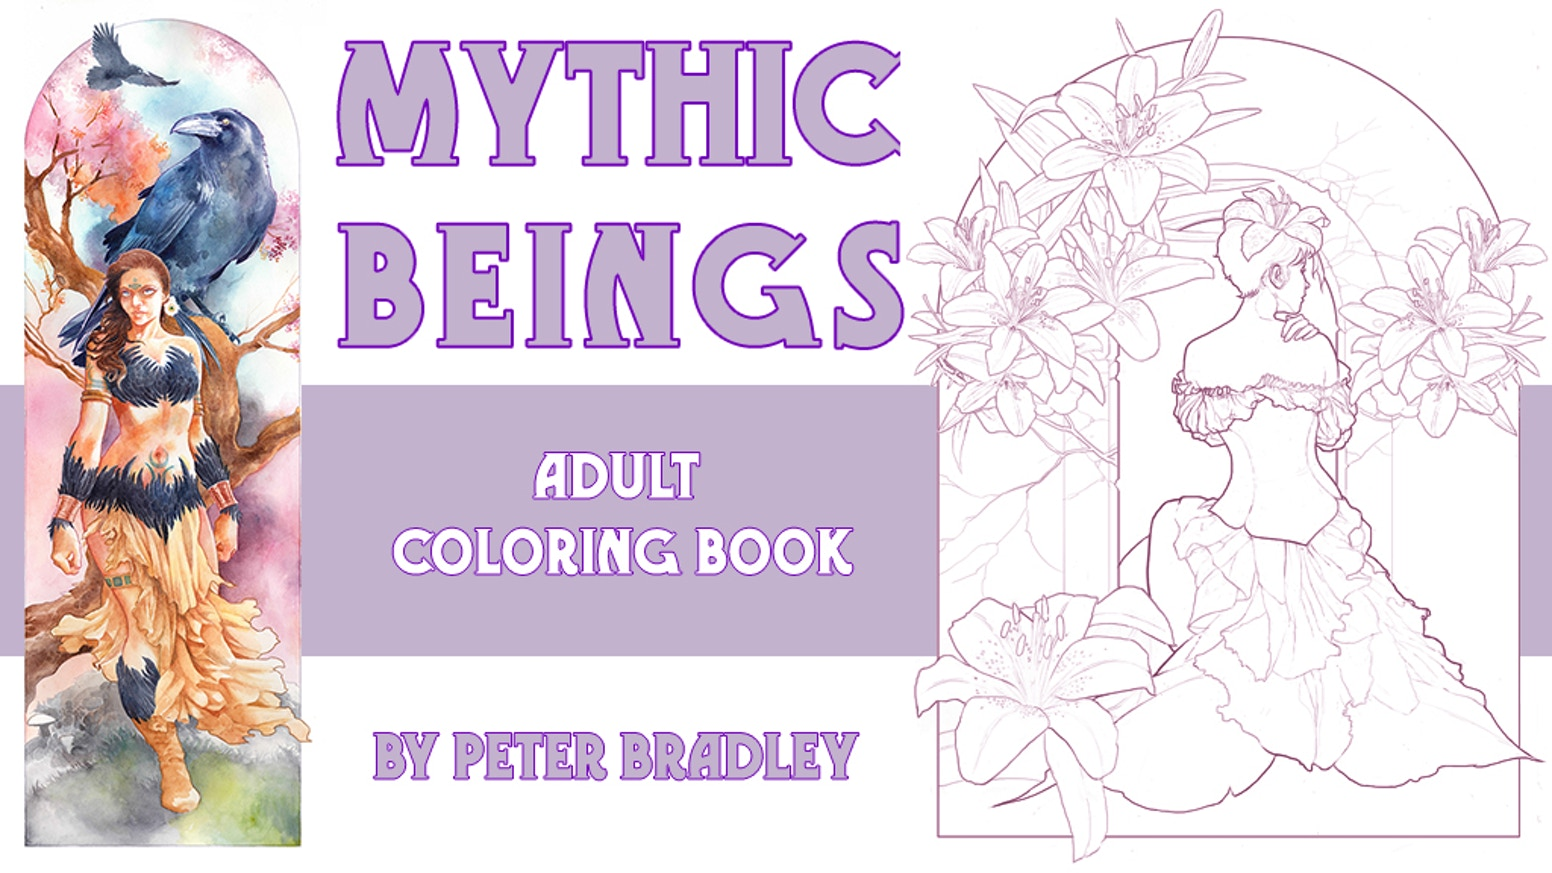 Publishers for adult coloring books - Mythic Beings Adult Coloring Book